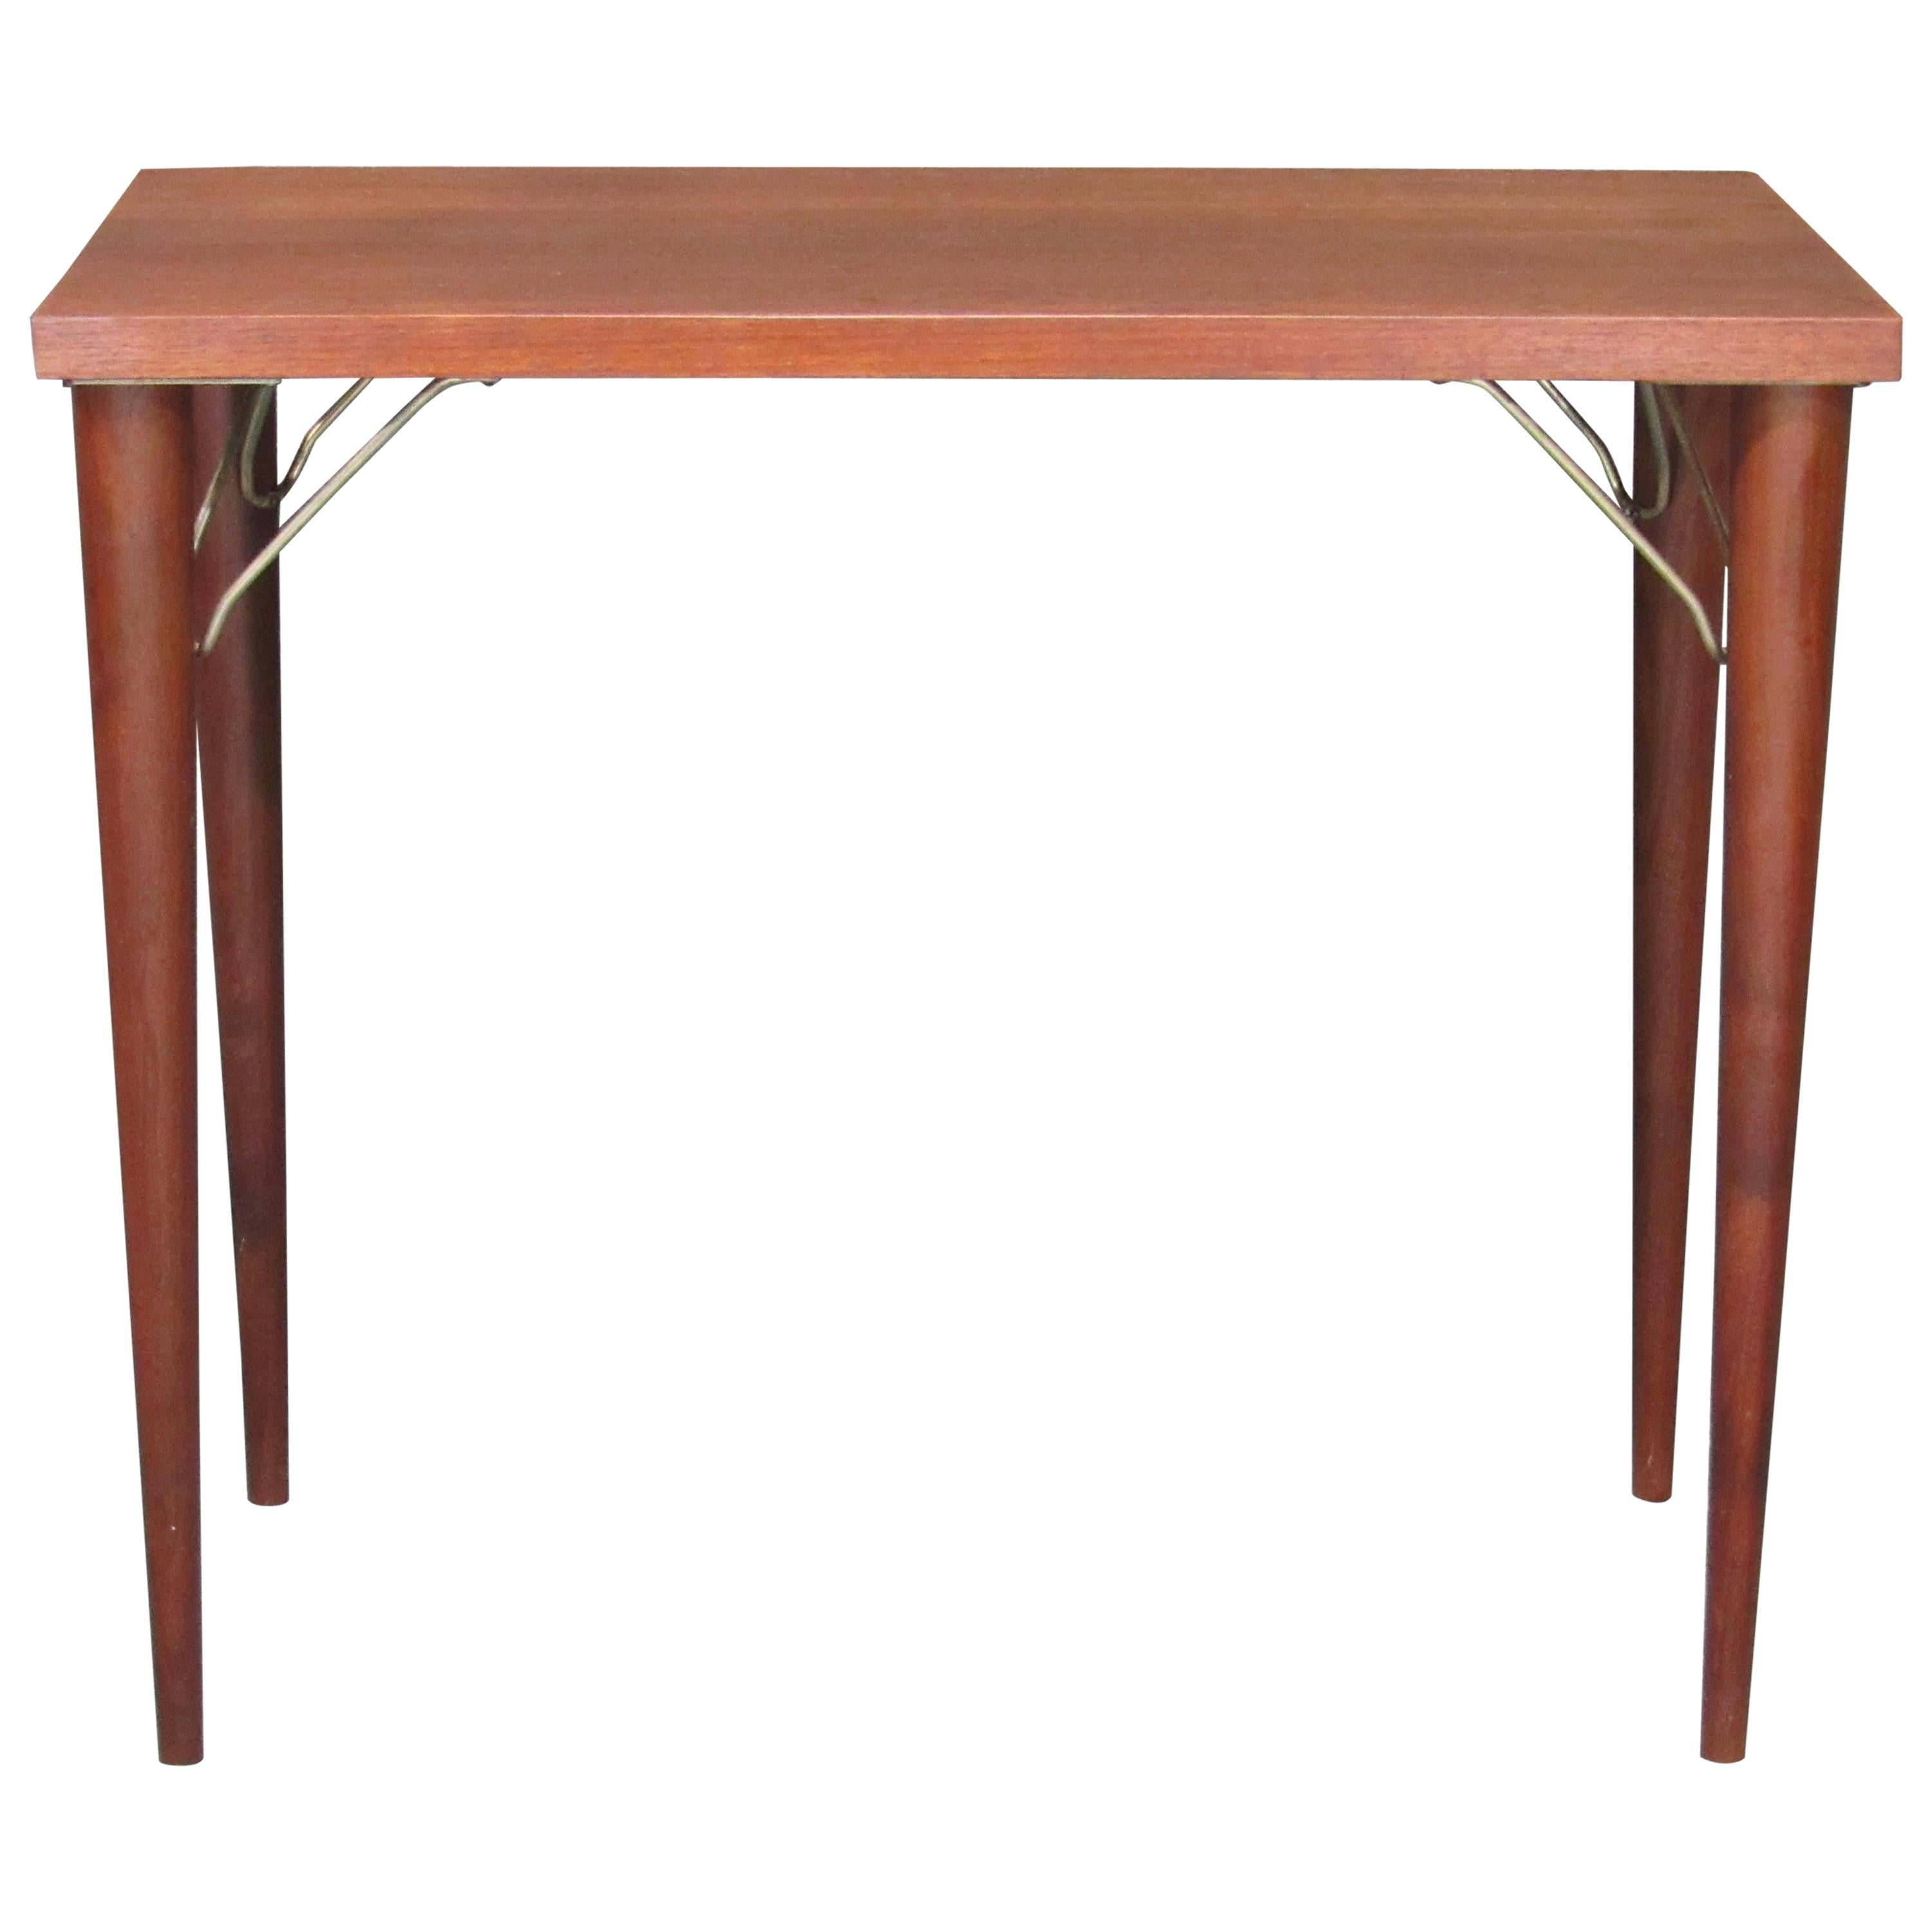 Mid-Century Modern Rosewood Sofa Console Table or Desk Return by Design Research